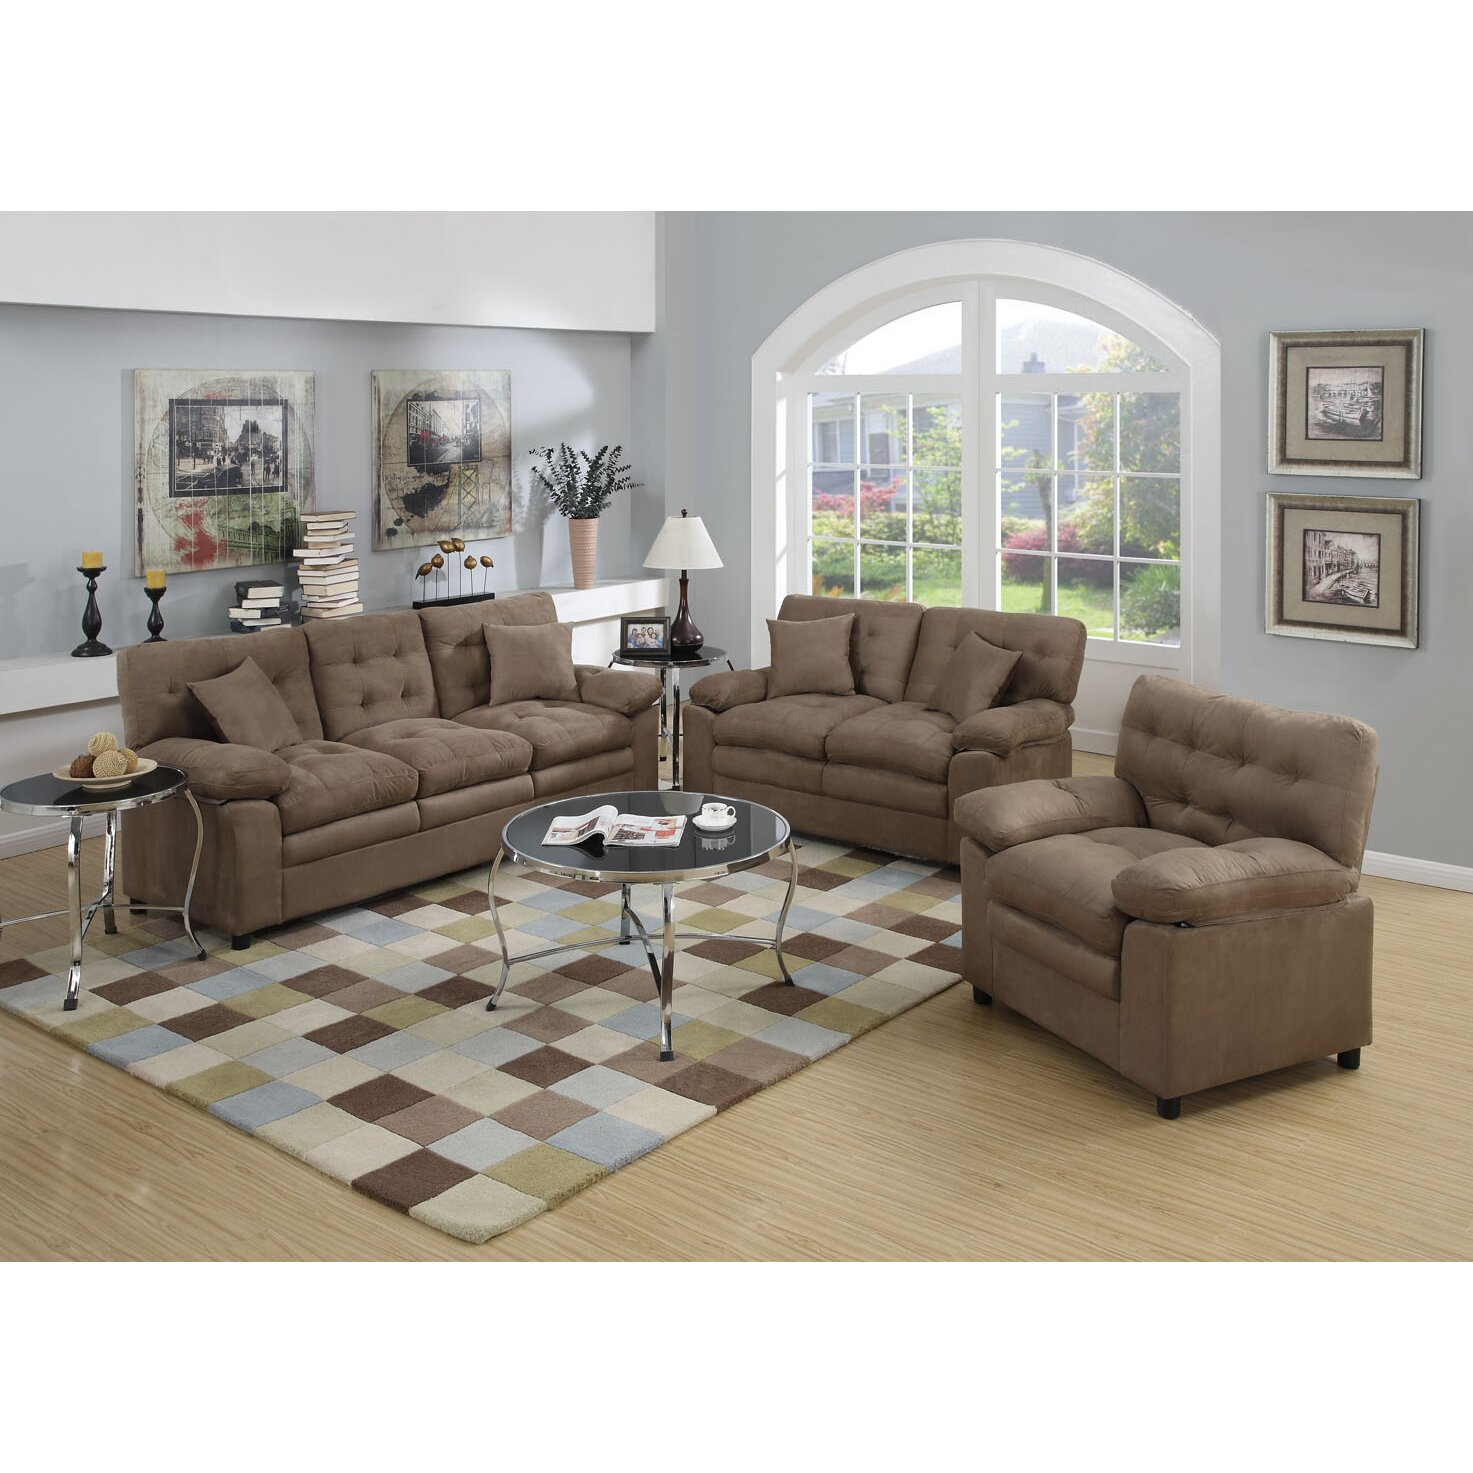 Poundex bobkona colona 3 piece living room set reviews for Living room chair set